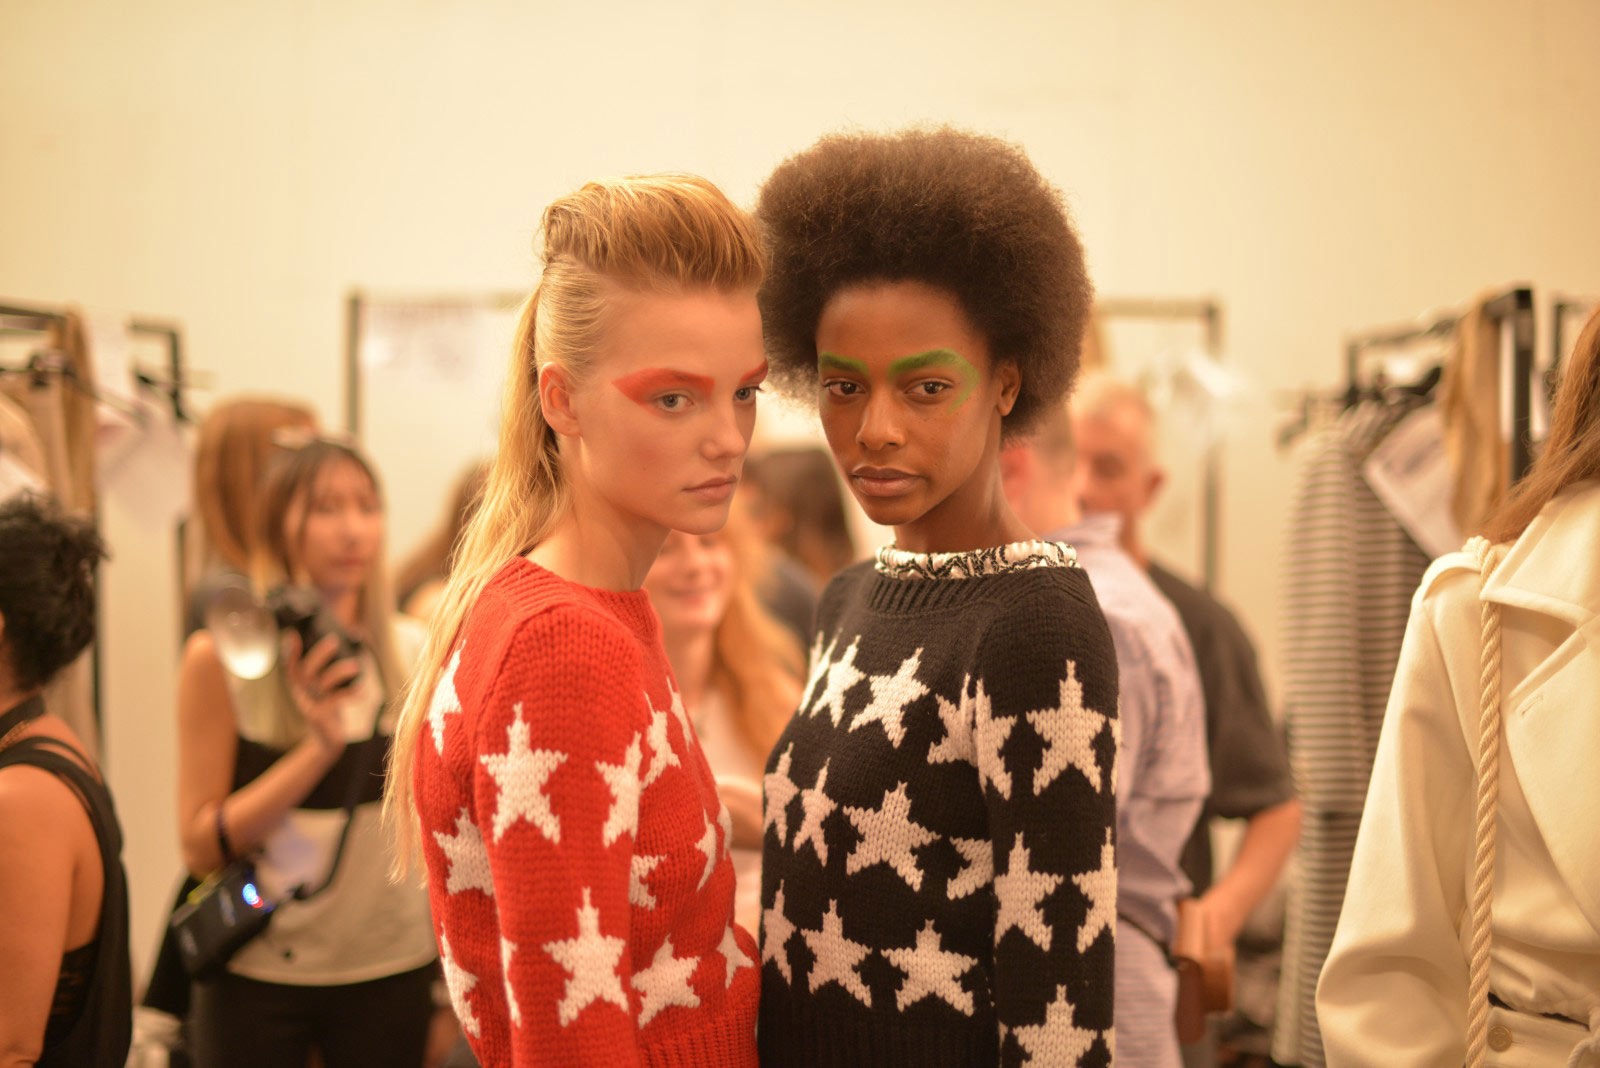 Roos Abels and Karly Loyce backstage at Max Mara SS16 fashion show in milan